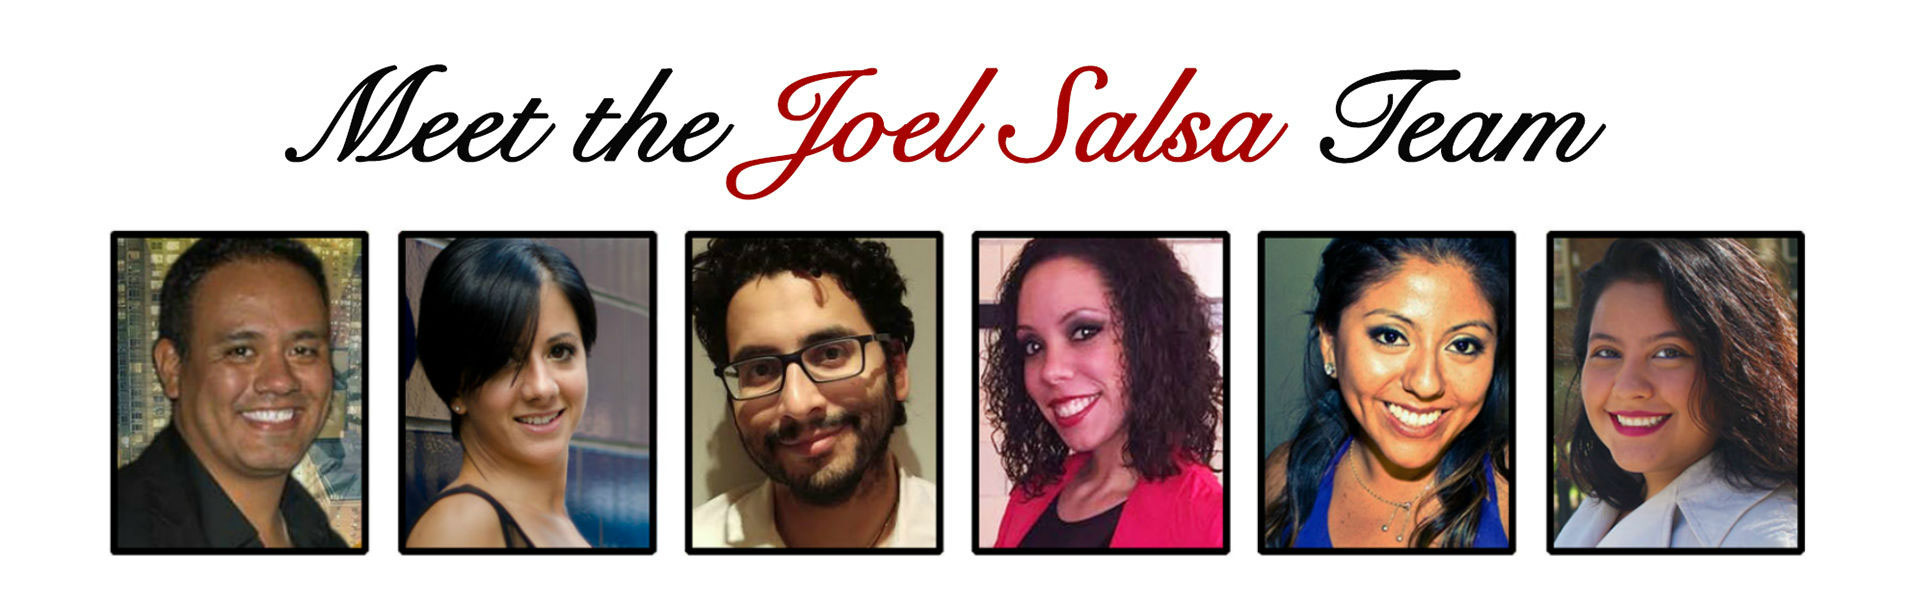 meet the team JoelSalsa